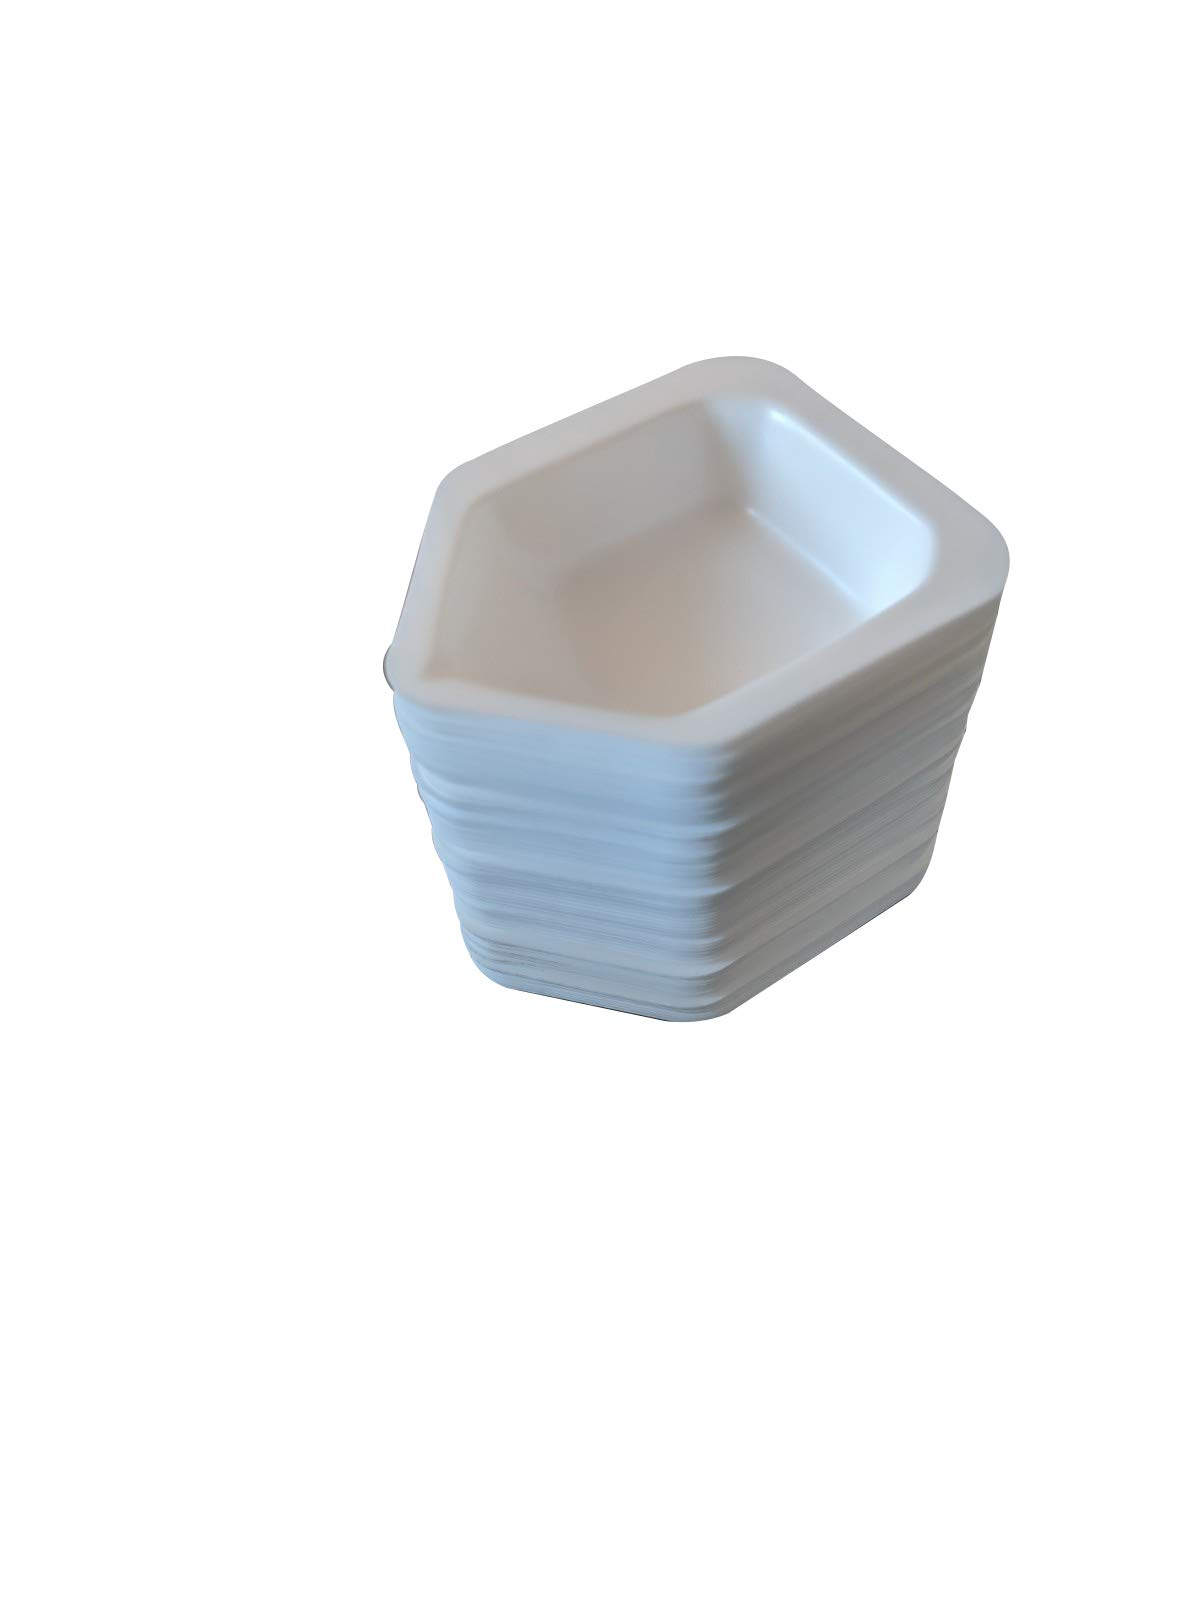 Pointed Polystyrene Weigh Canoe Boats, Medium Dish 2 7/8 in x 4 ¾ in x 1 ¼ in [Pack of 125]